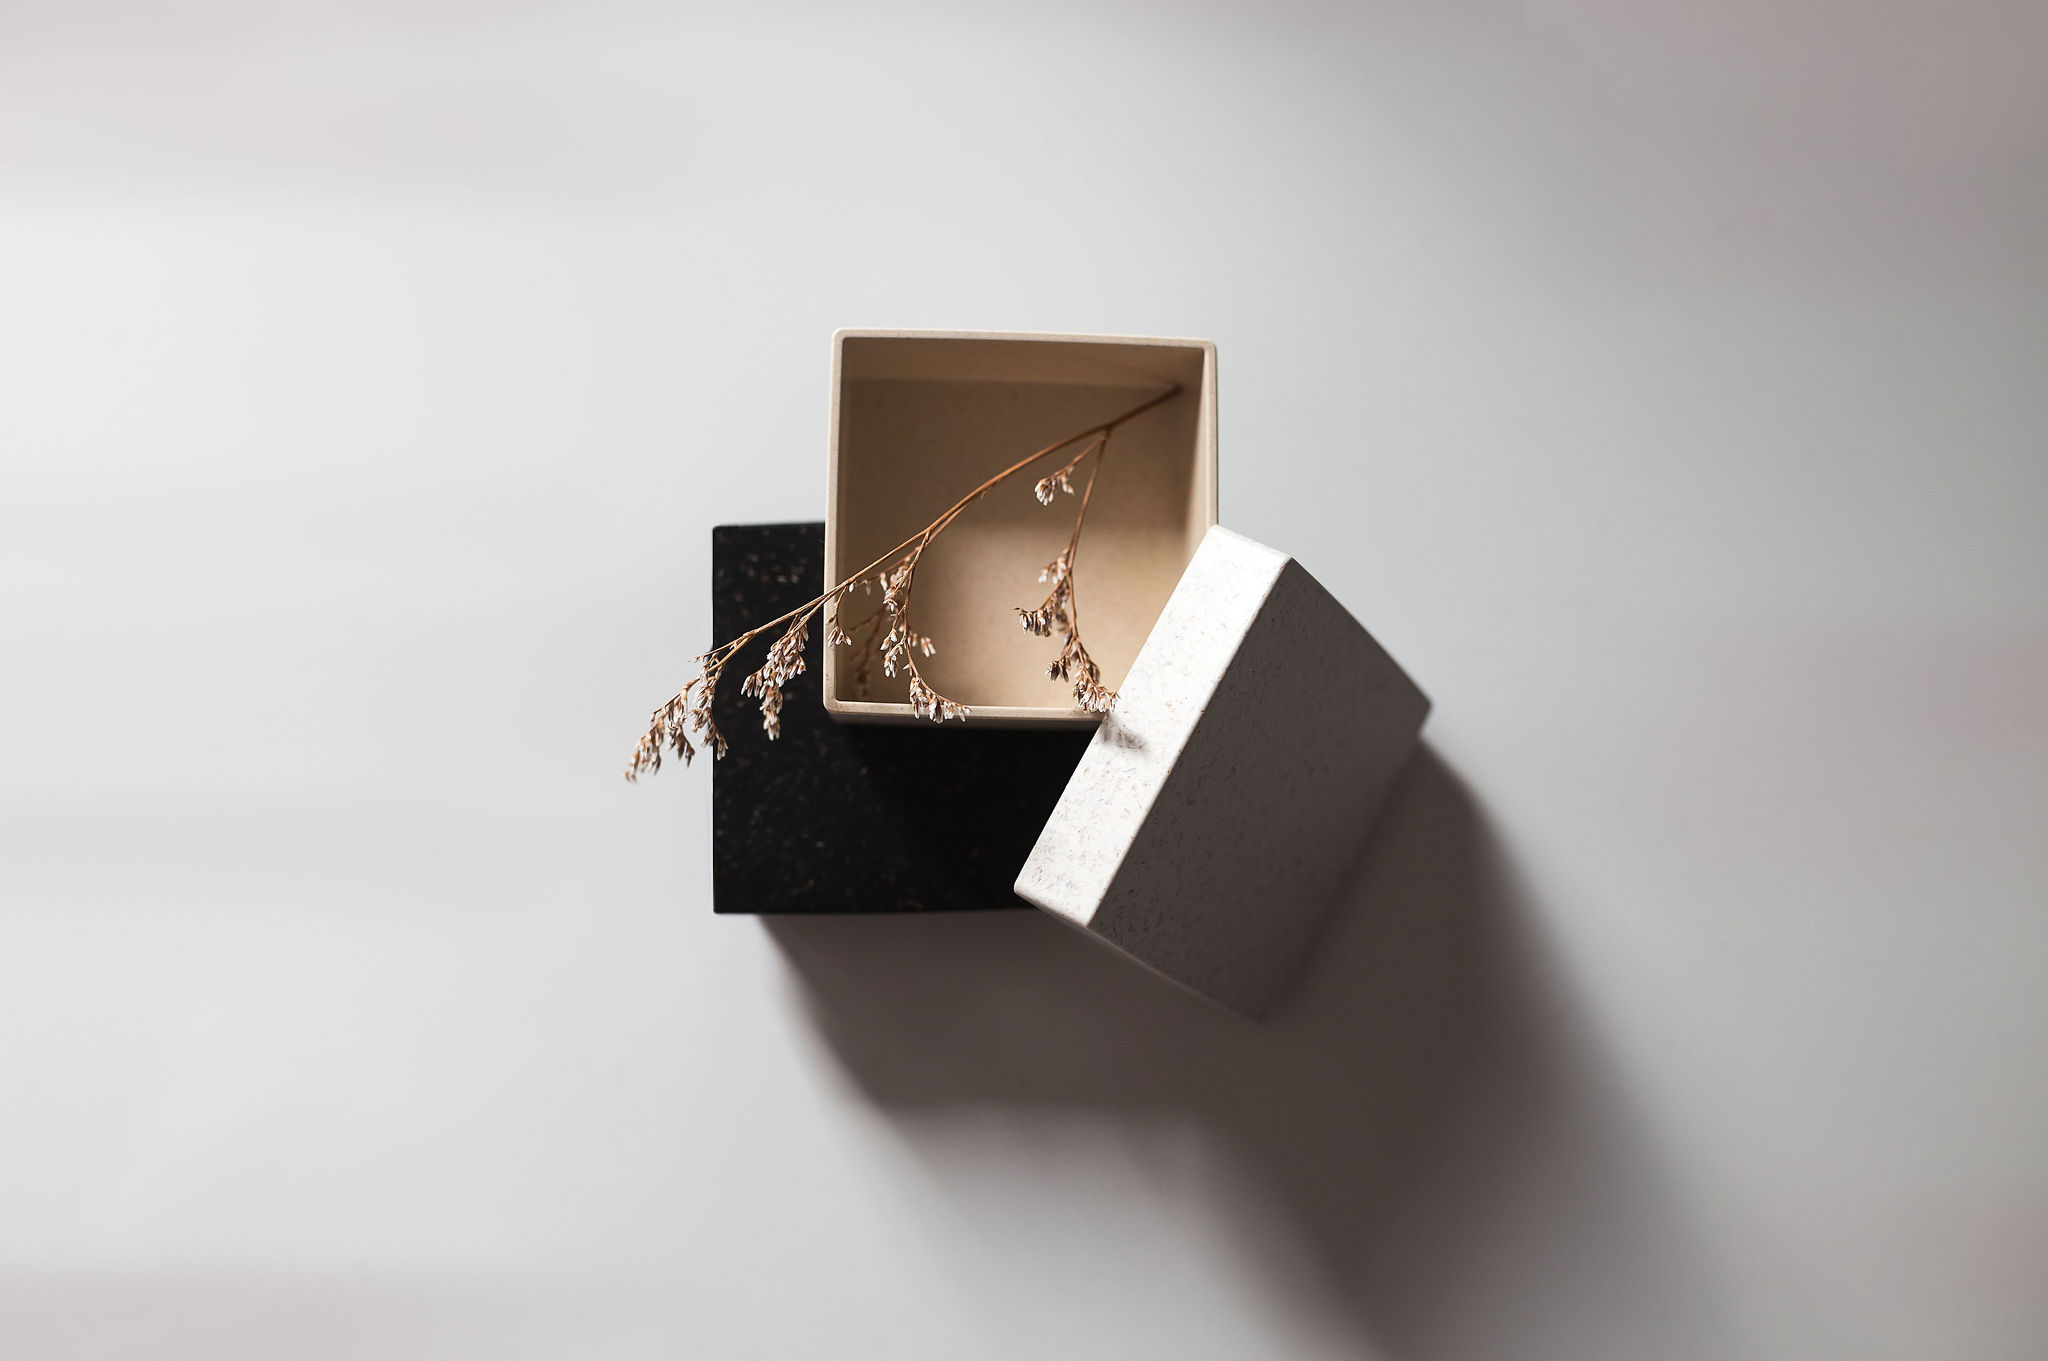 Sulapac material can be used for premium retail packaging for jewelry and watches